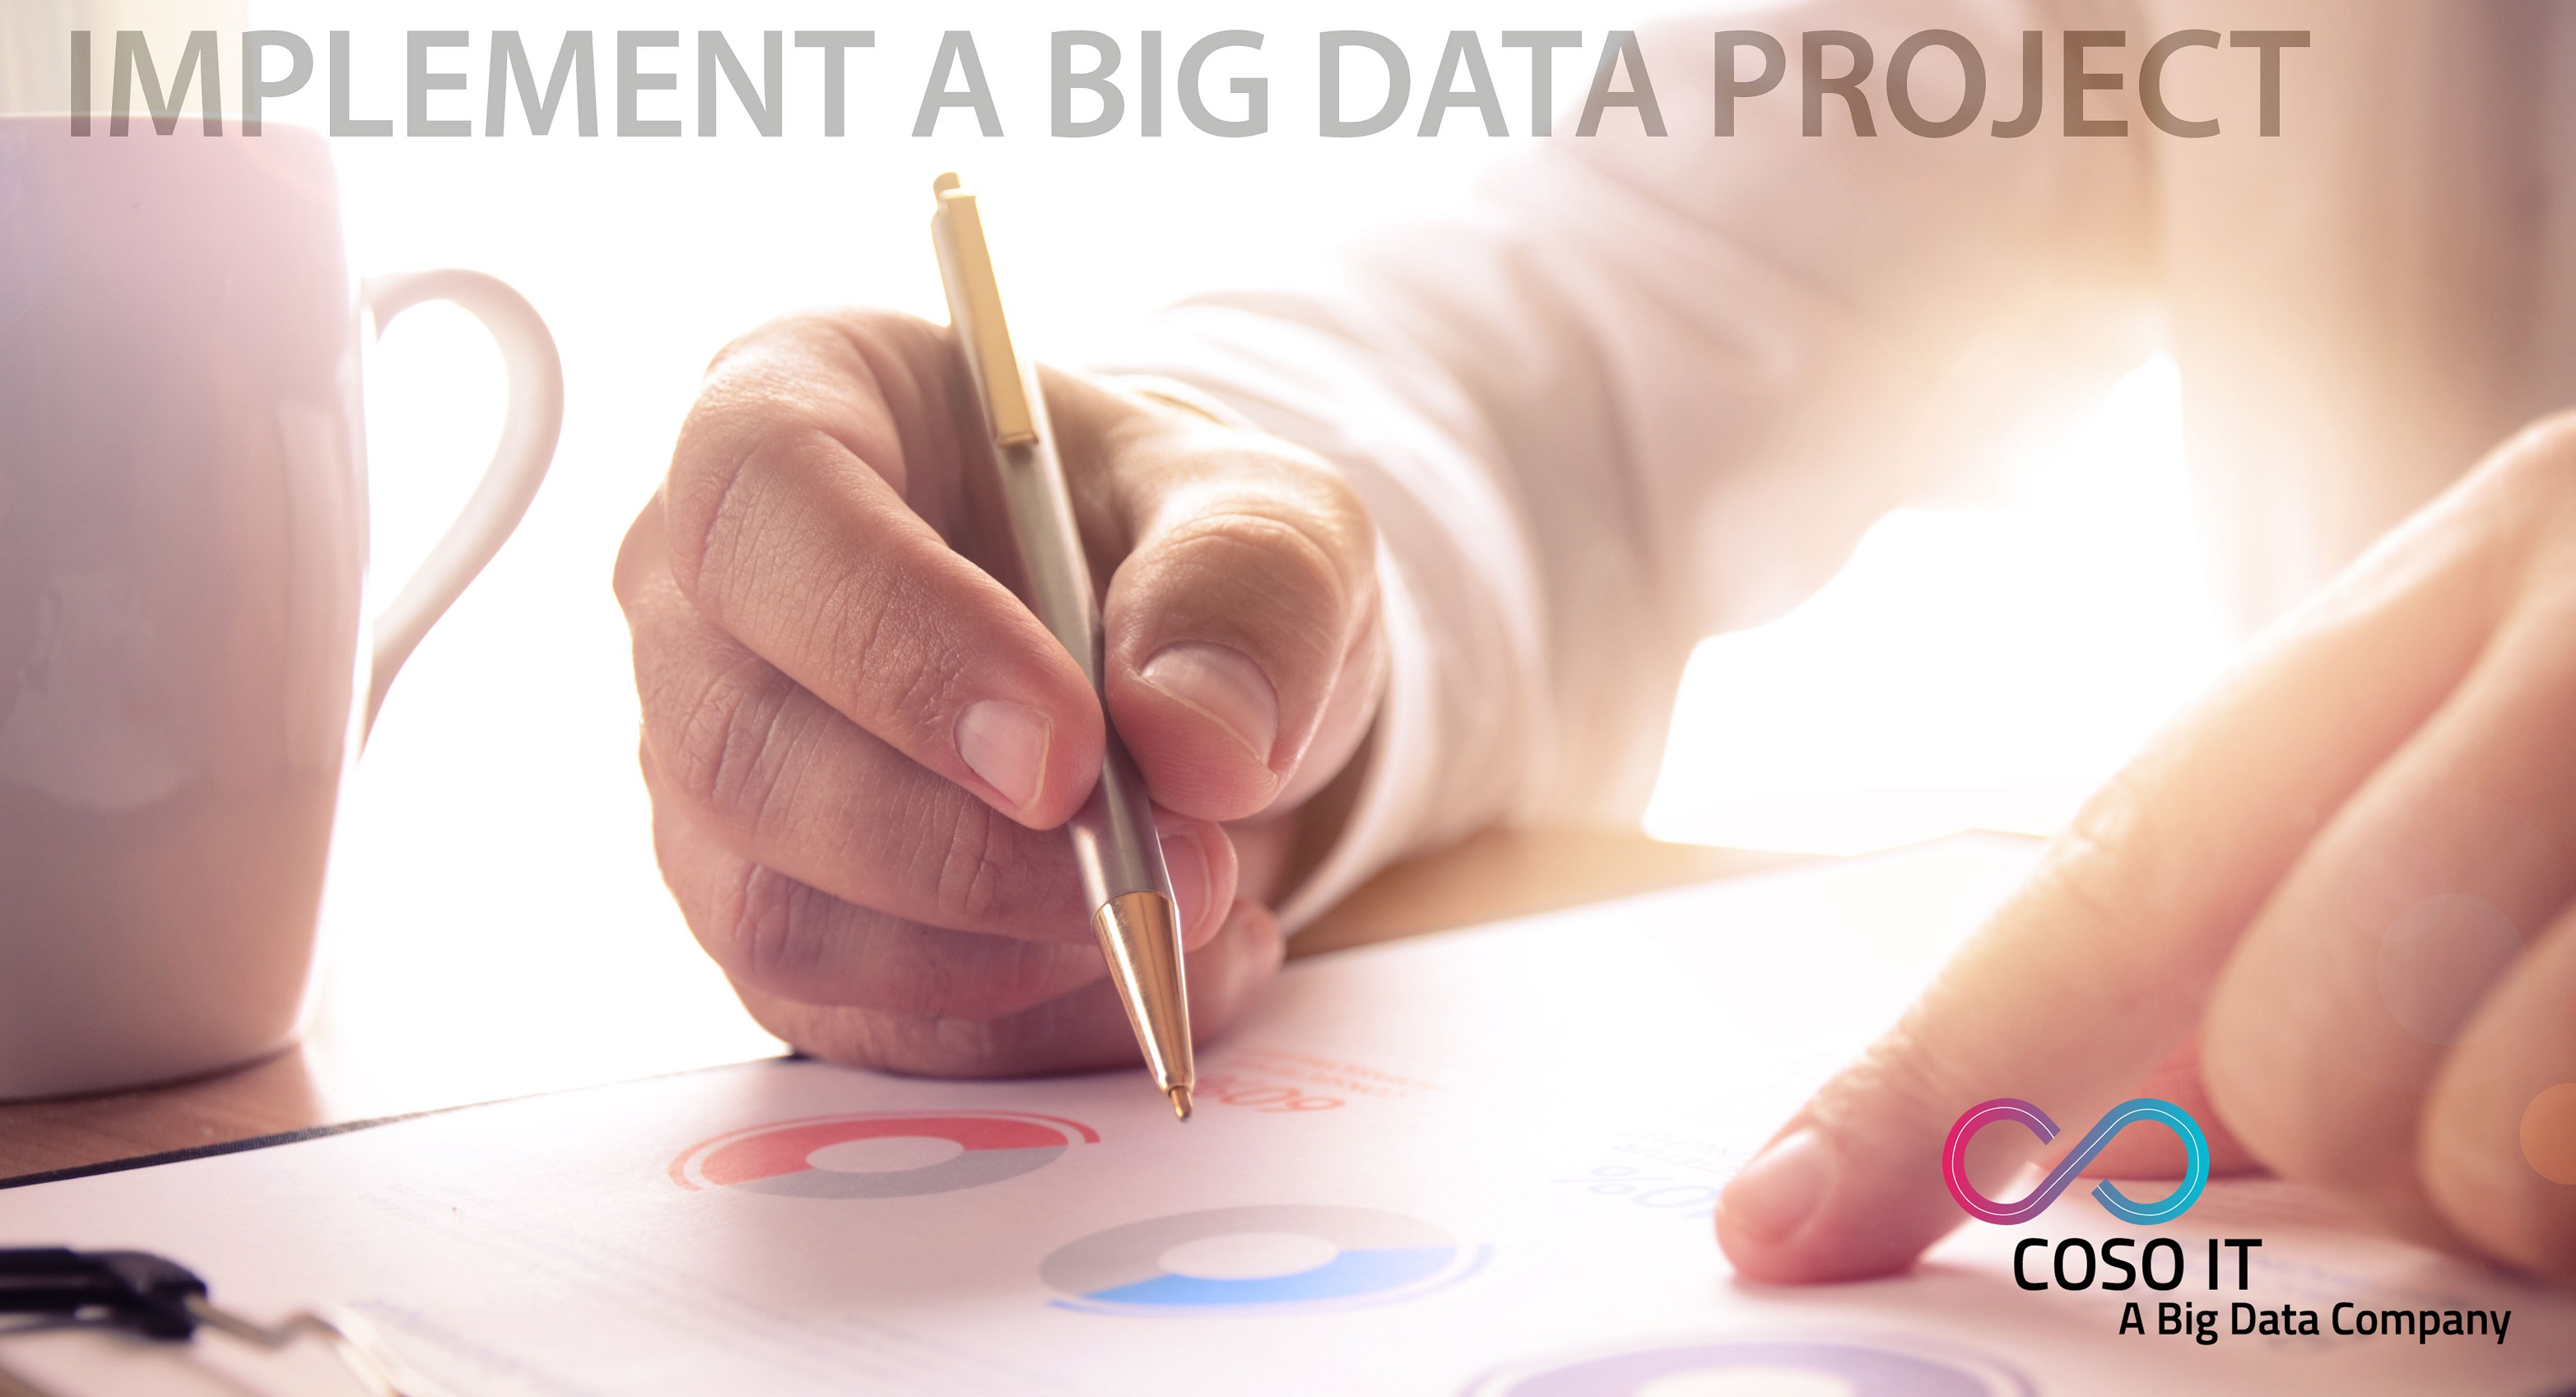 How to Implement a Big Data Project?